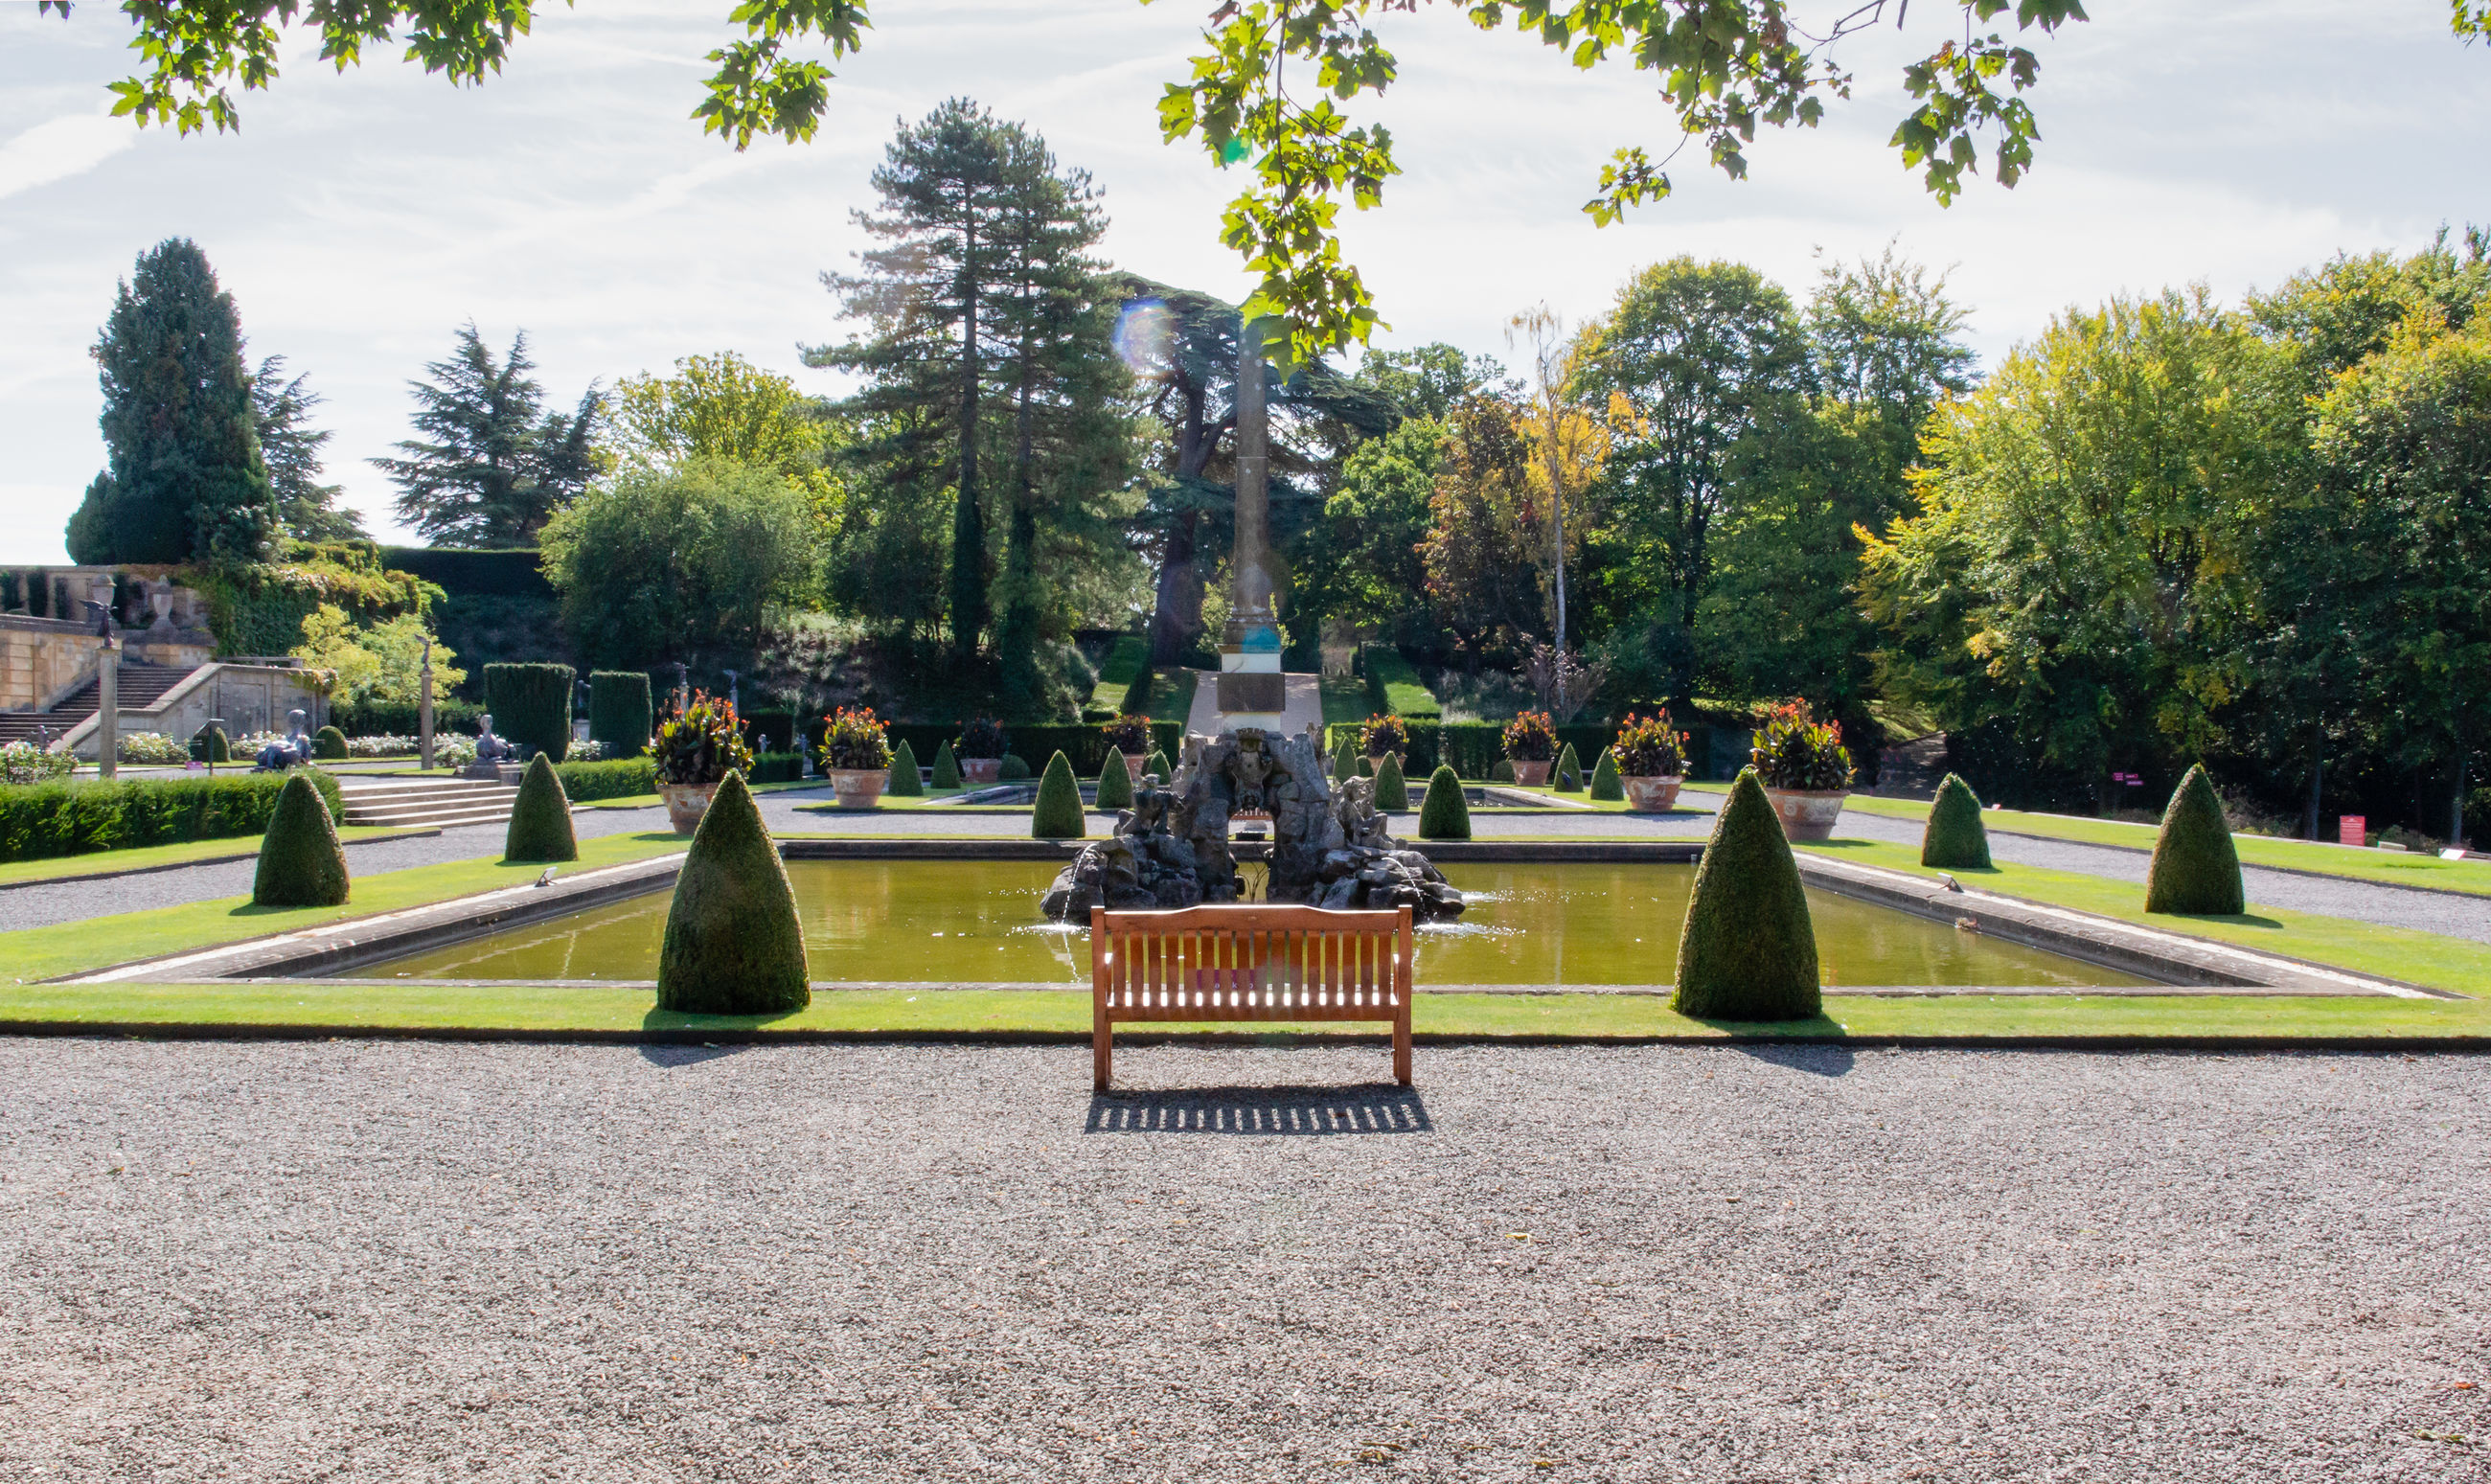 tree, plant, nature, day, park, sky, park - man made space, grass, growth, green color, architecture, outdoors, sculpture, no people, tranquility, beauty in nature, sunlight, garden, statue, history